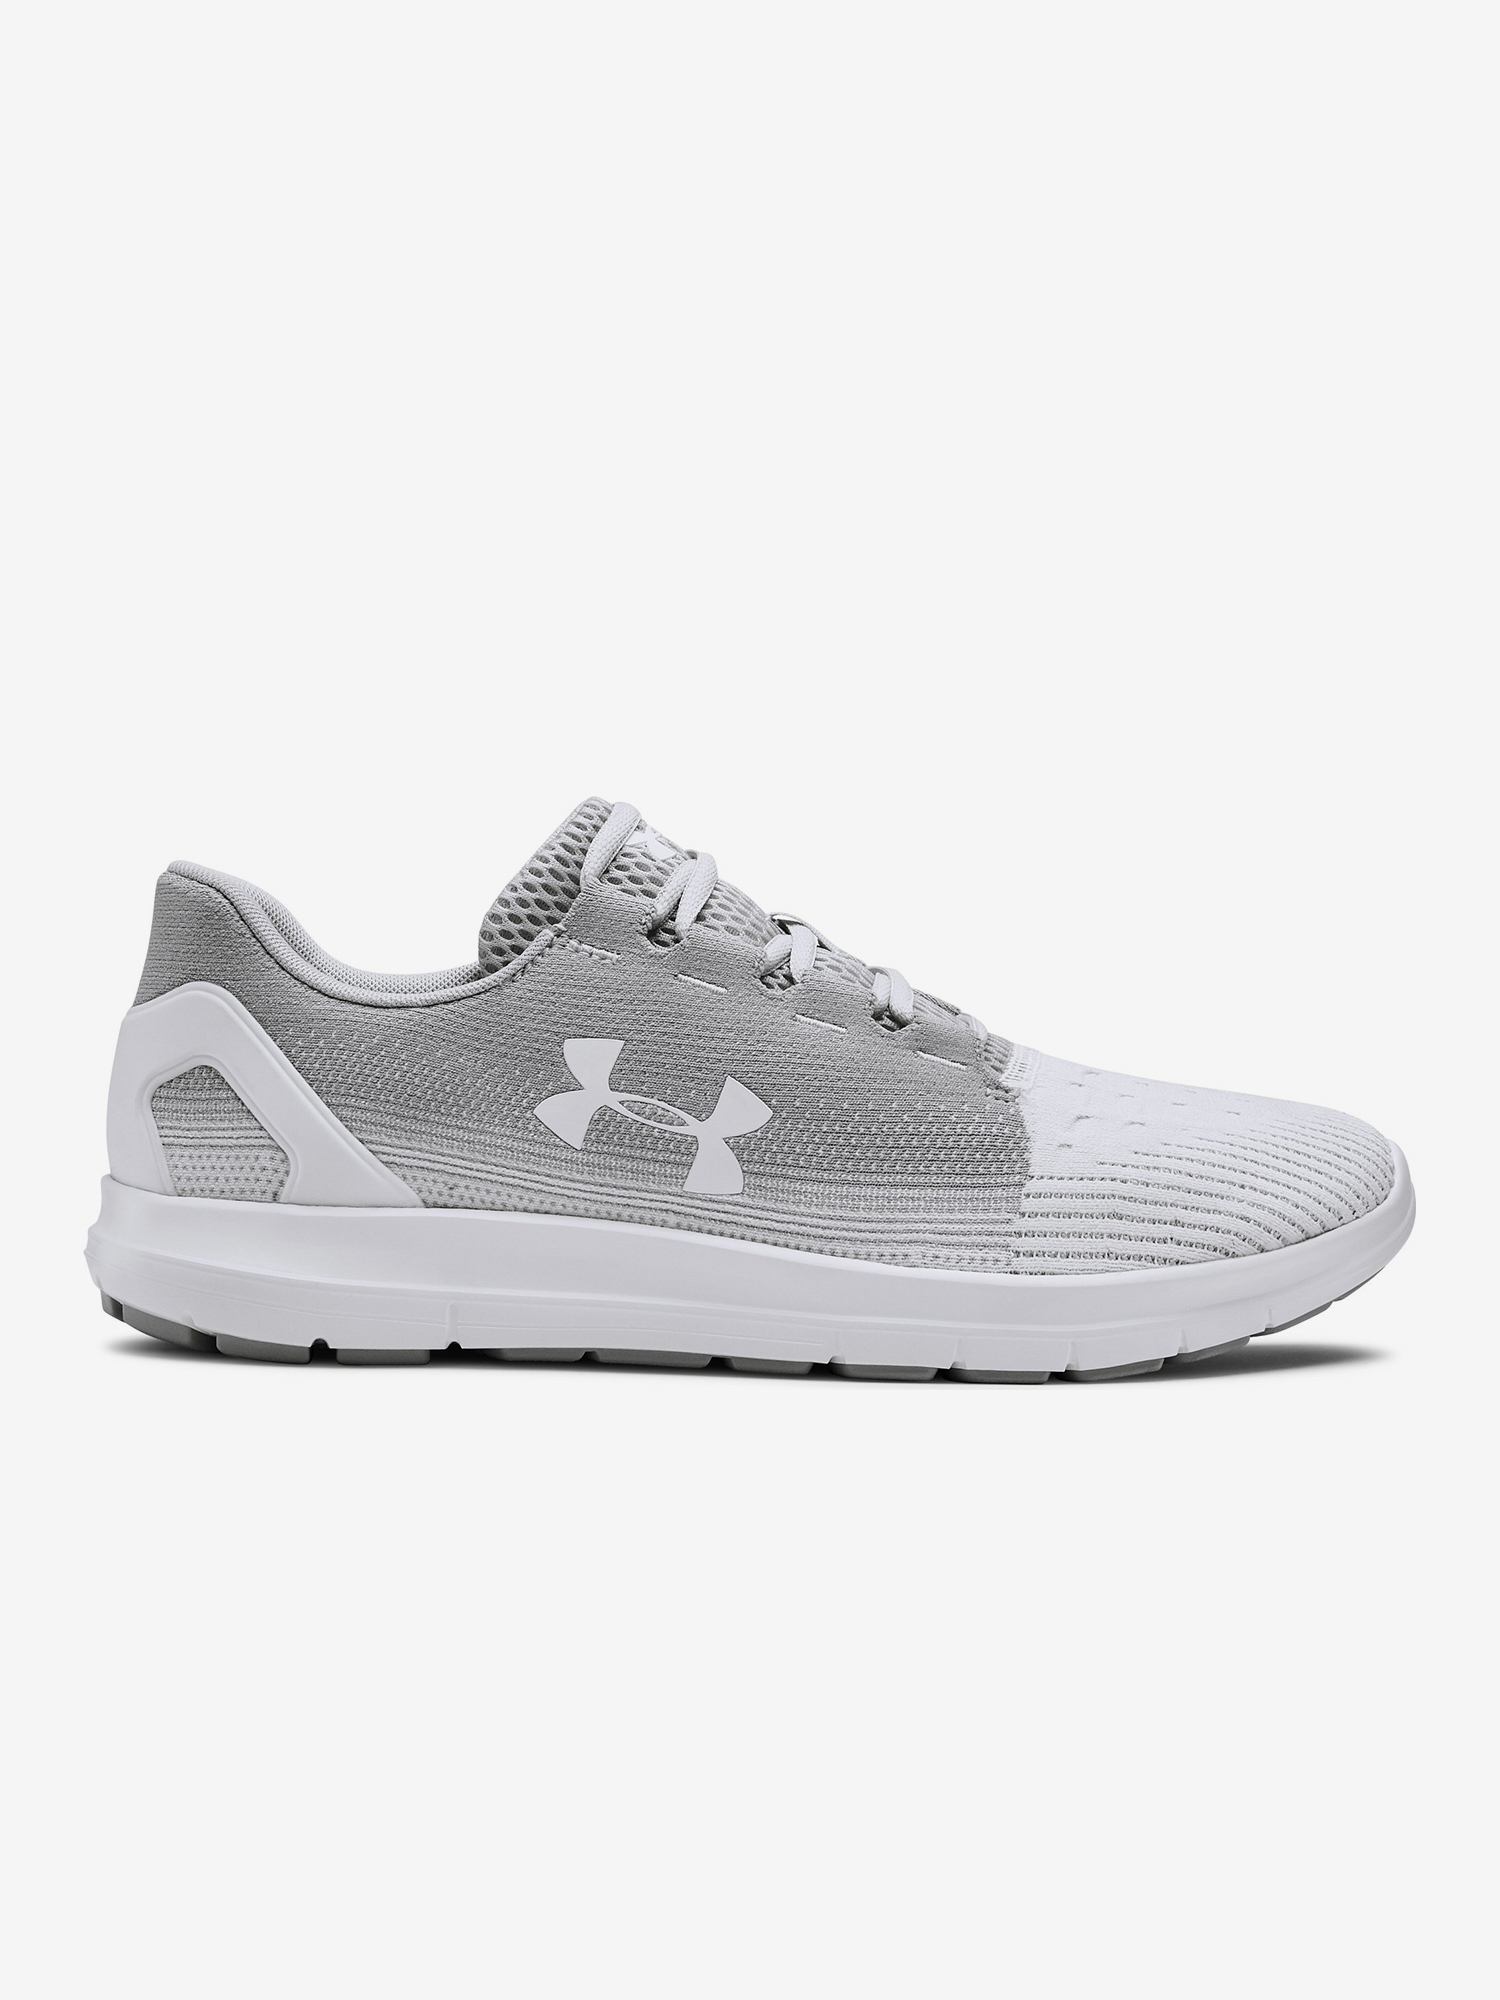 Boty Under Armour Remix 2.0-Gry